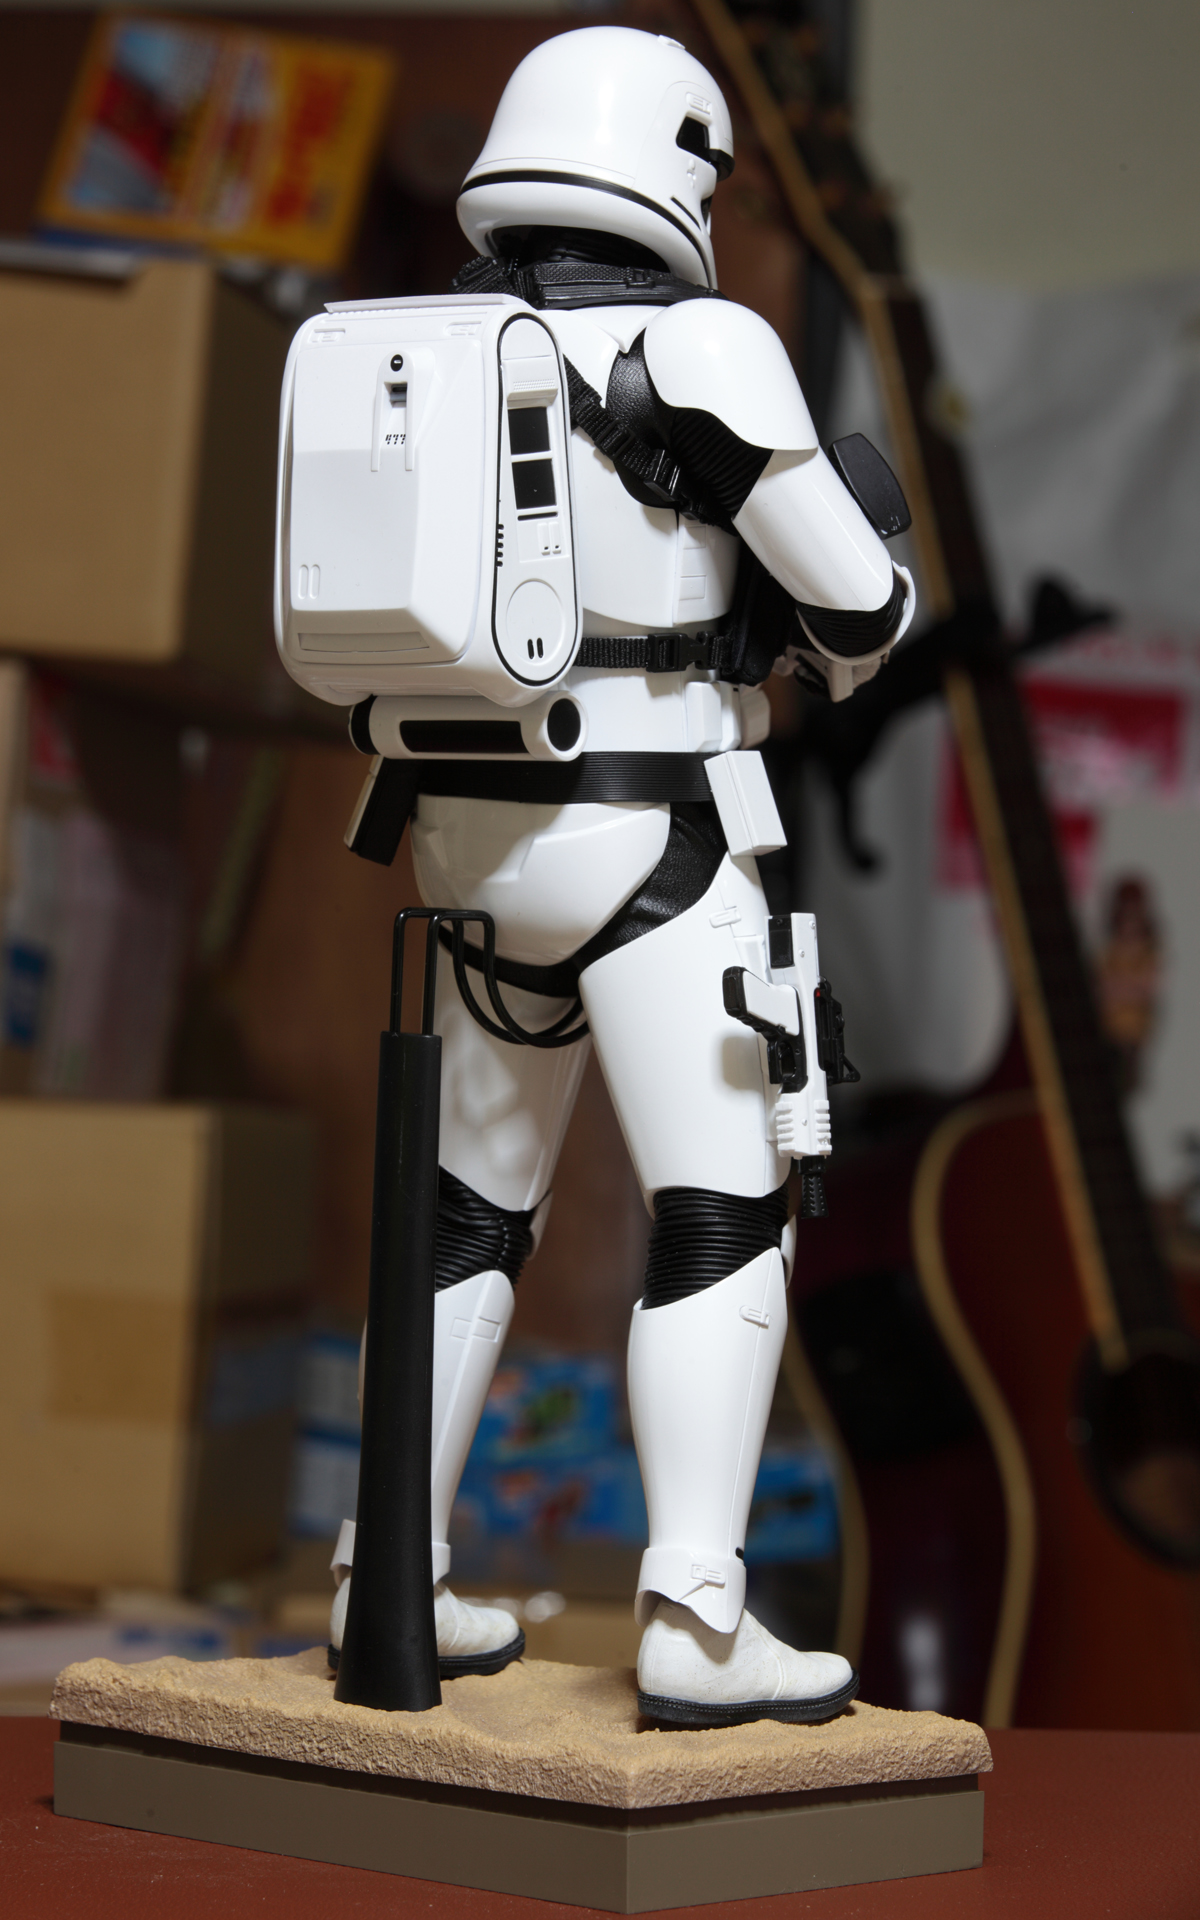 hottoys-star-wars-the-force-awakens-first-order-stormtrooper-jakku-picture13